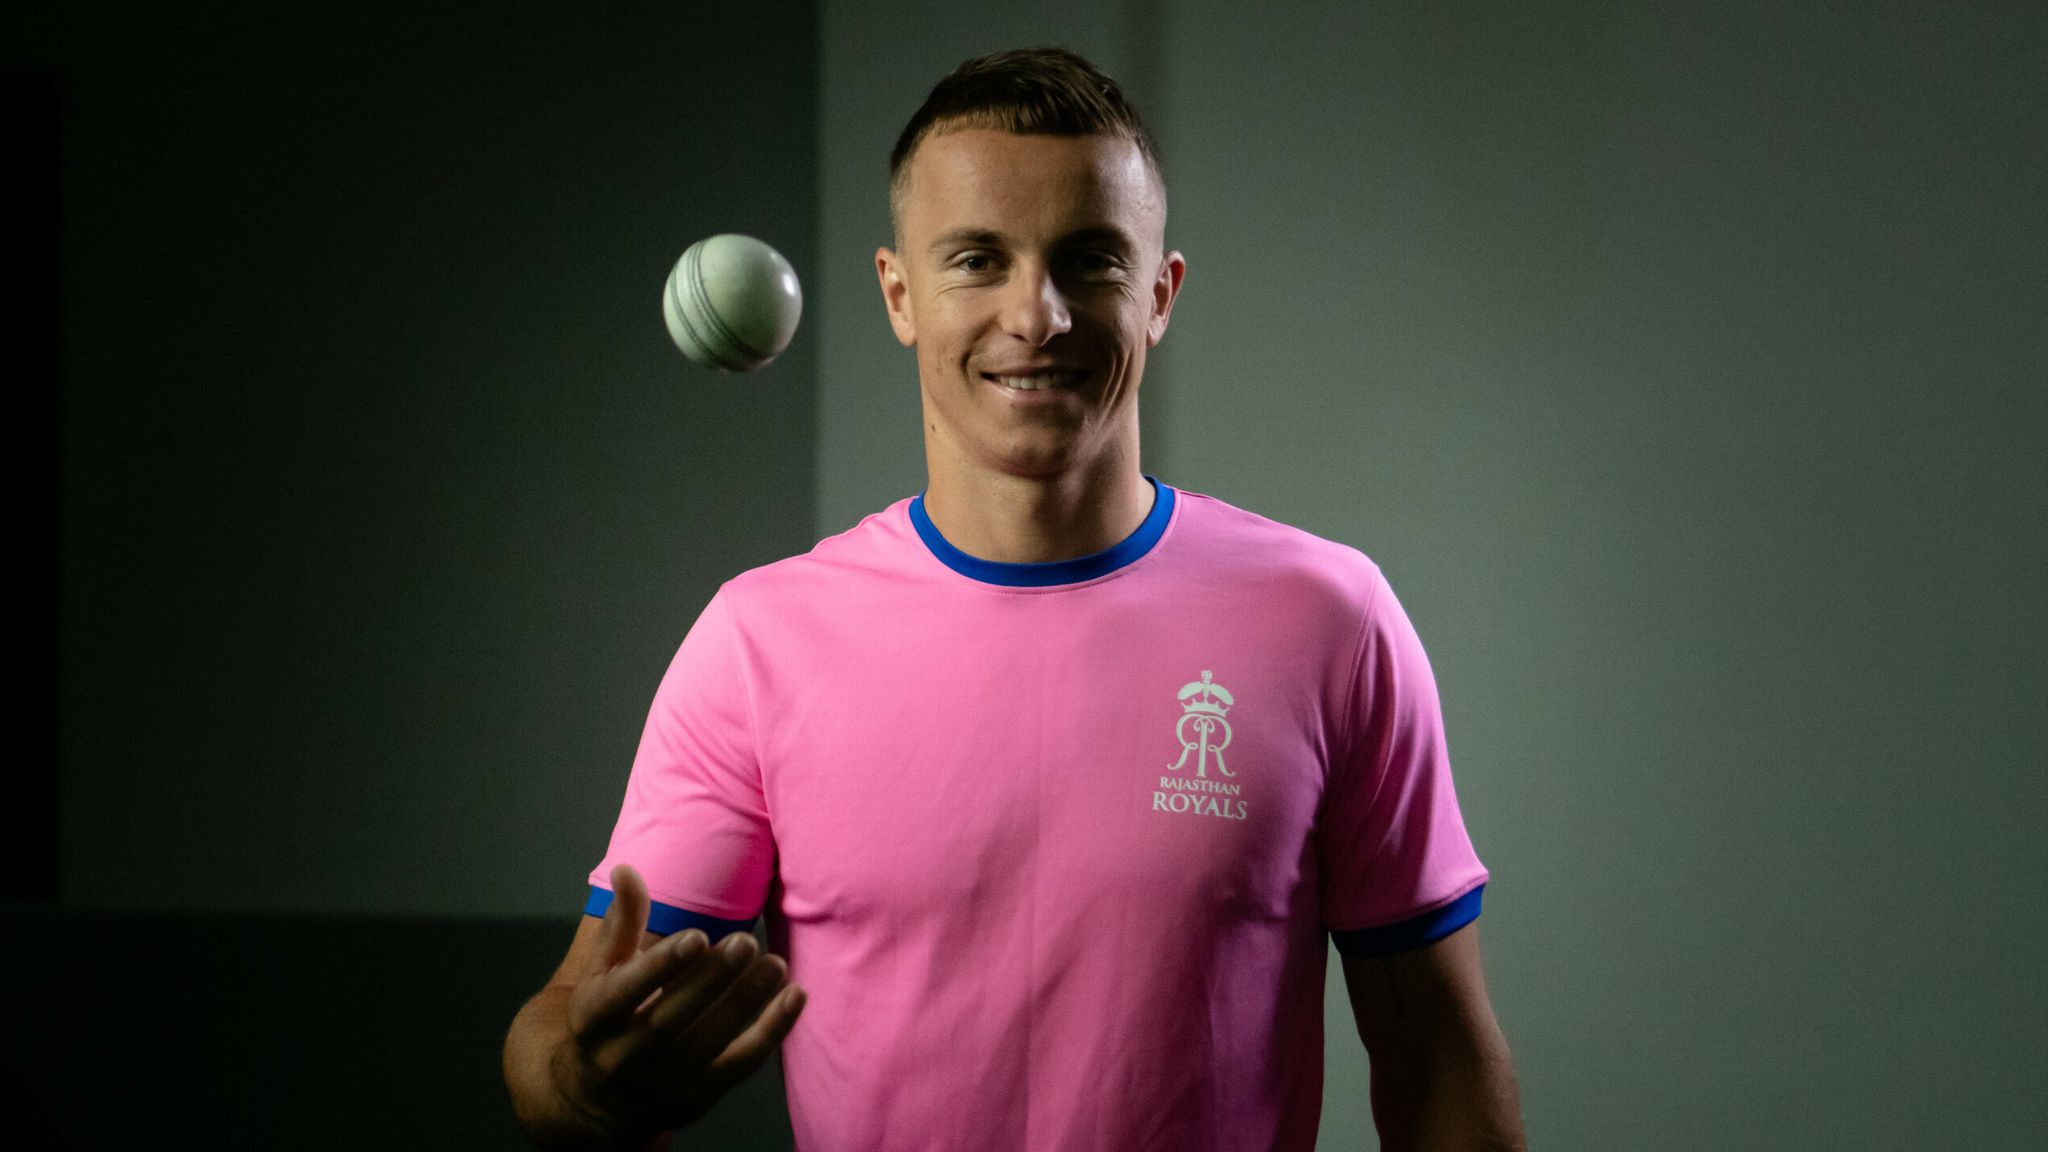 IPL: Tom Curran determined to prove a point | Cricket News | Sky Sports